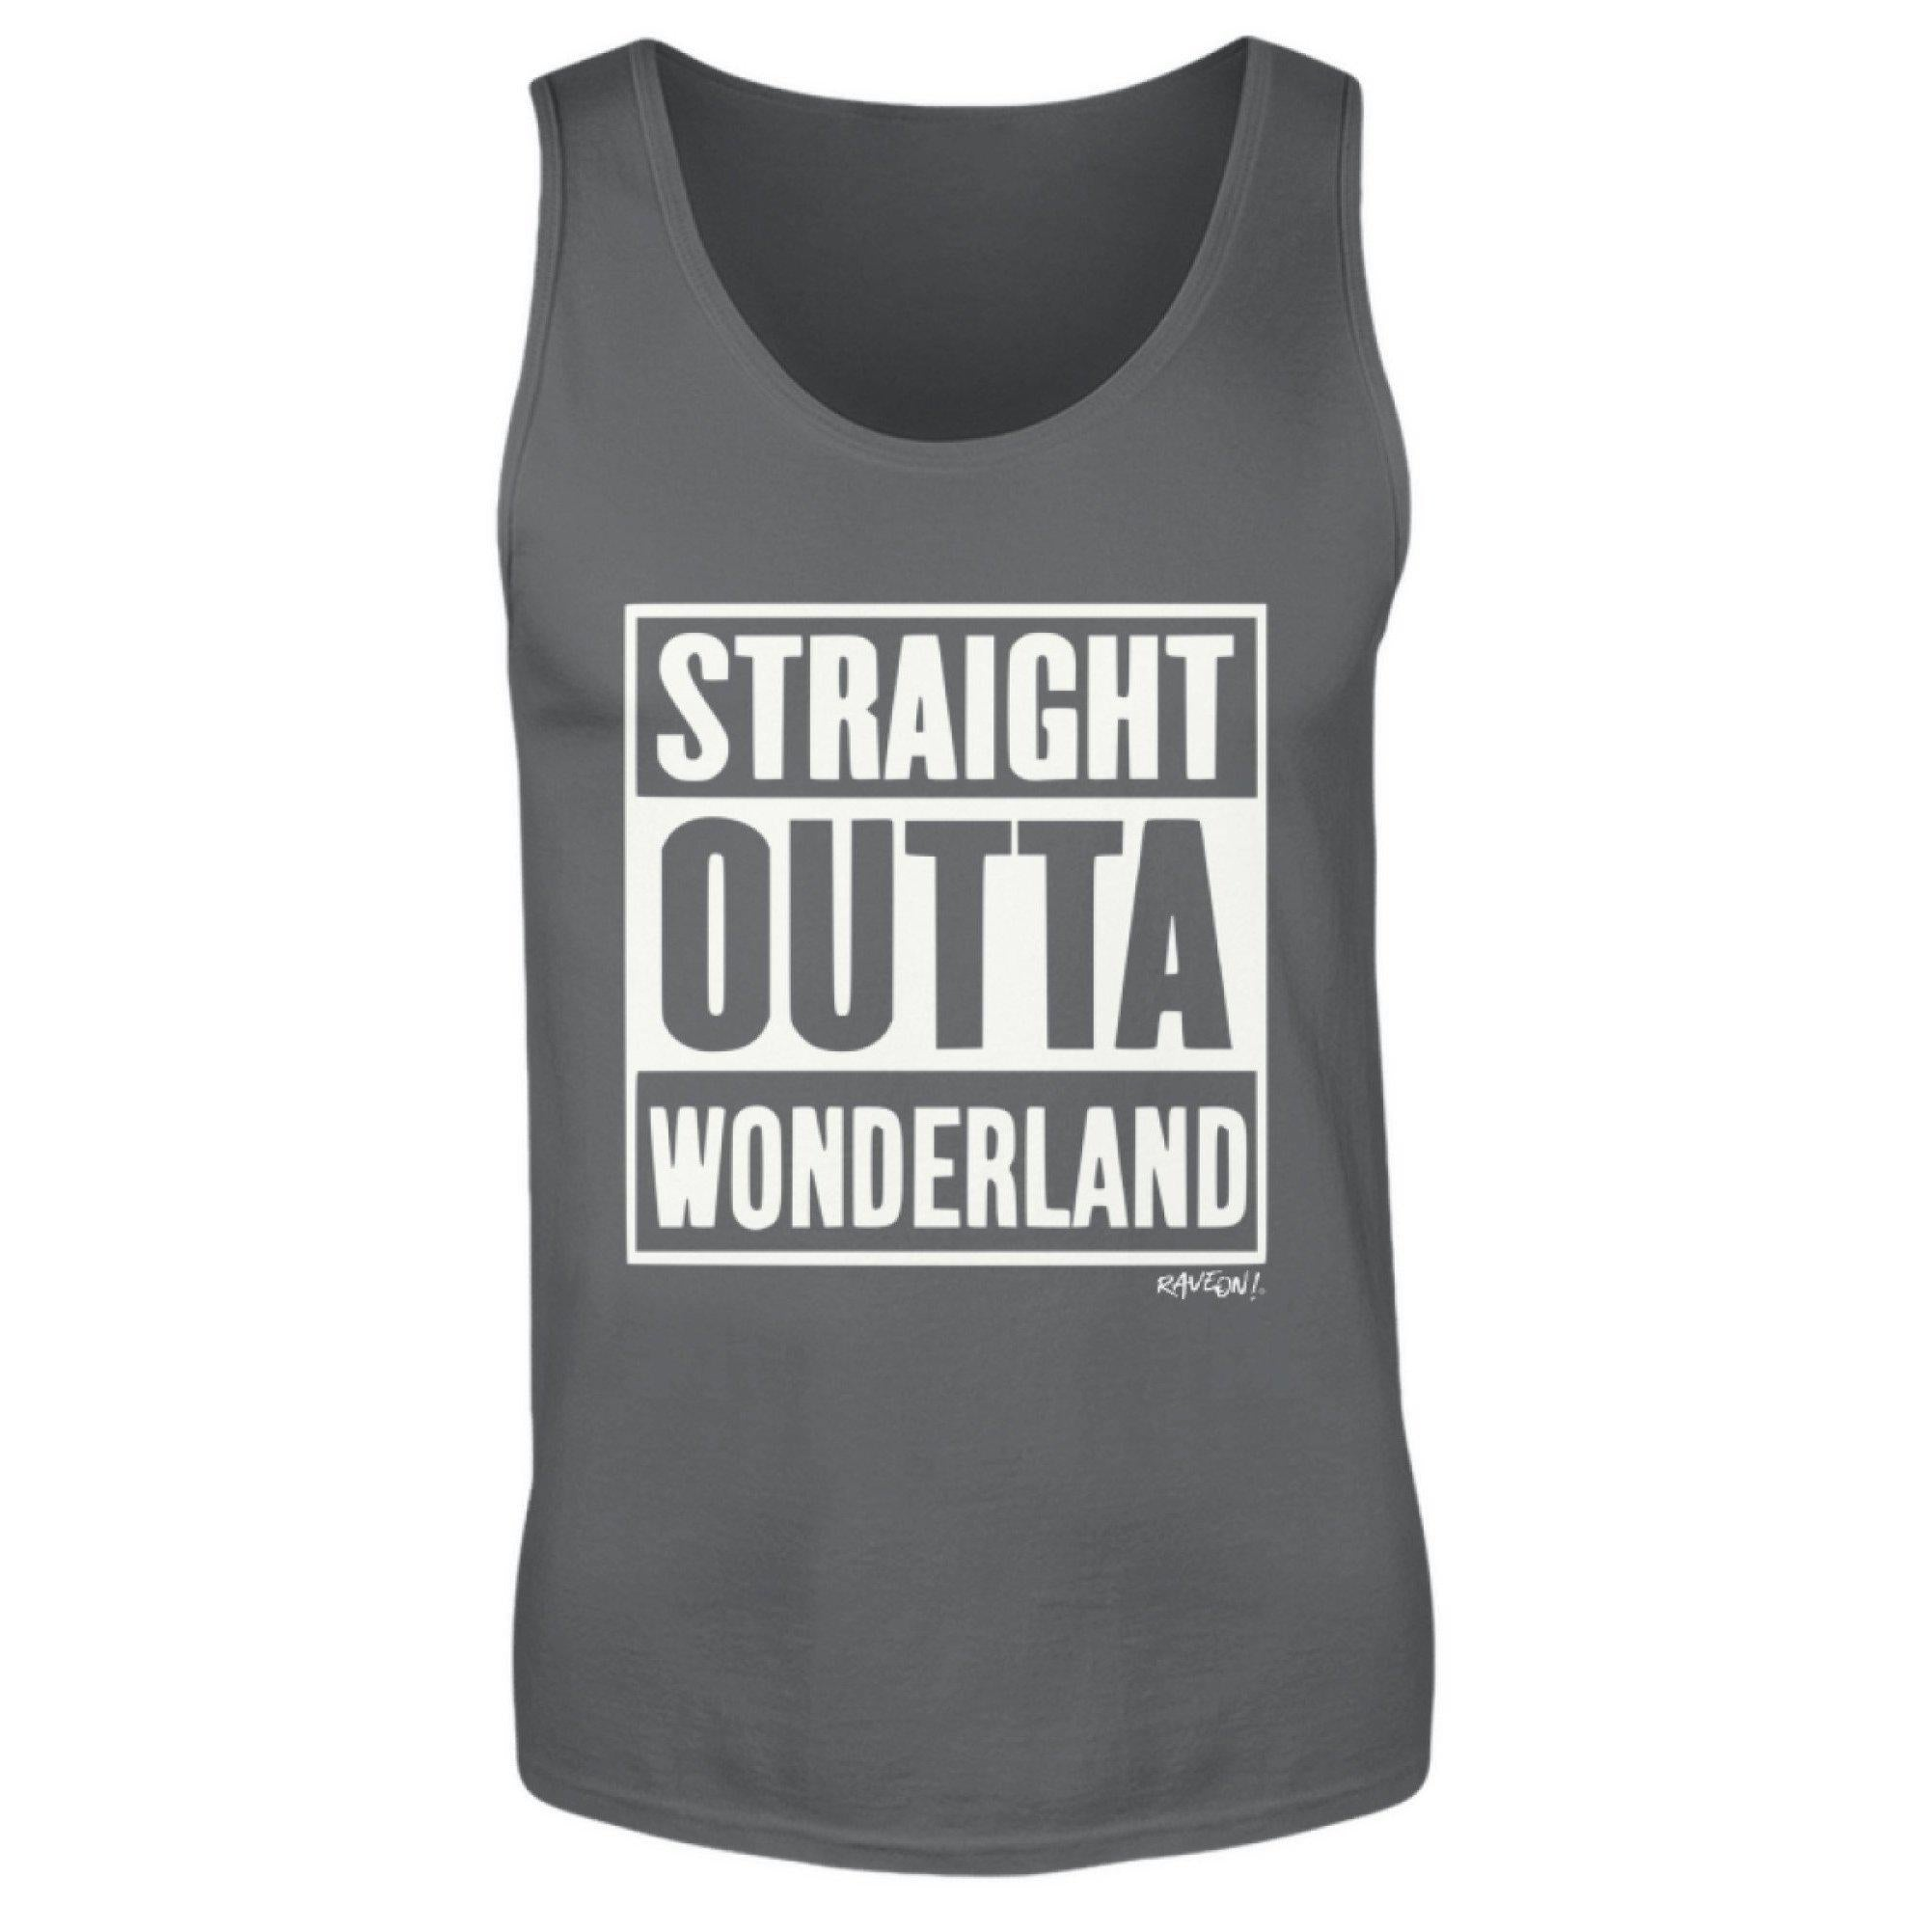 STRAIGHT OUTTA WONDERLAND - Rave On!® - Herren Tanktop Herren Tank-Top - Rave On!® der Club & Techno Szene Shop für Coole Junge Mode Streetwear Style & Fashion Outfits + Sexy Festival 420 Stuff